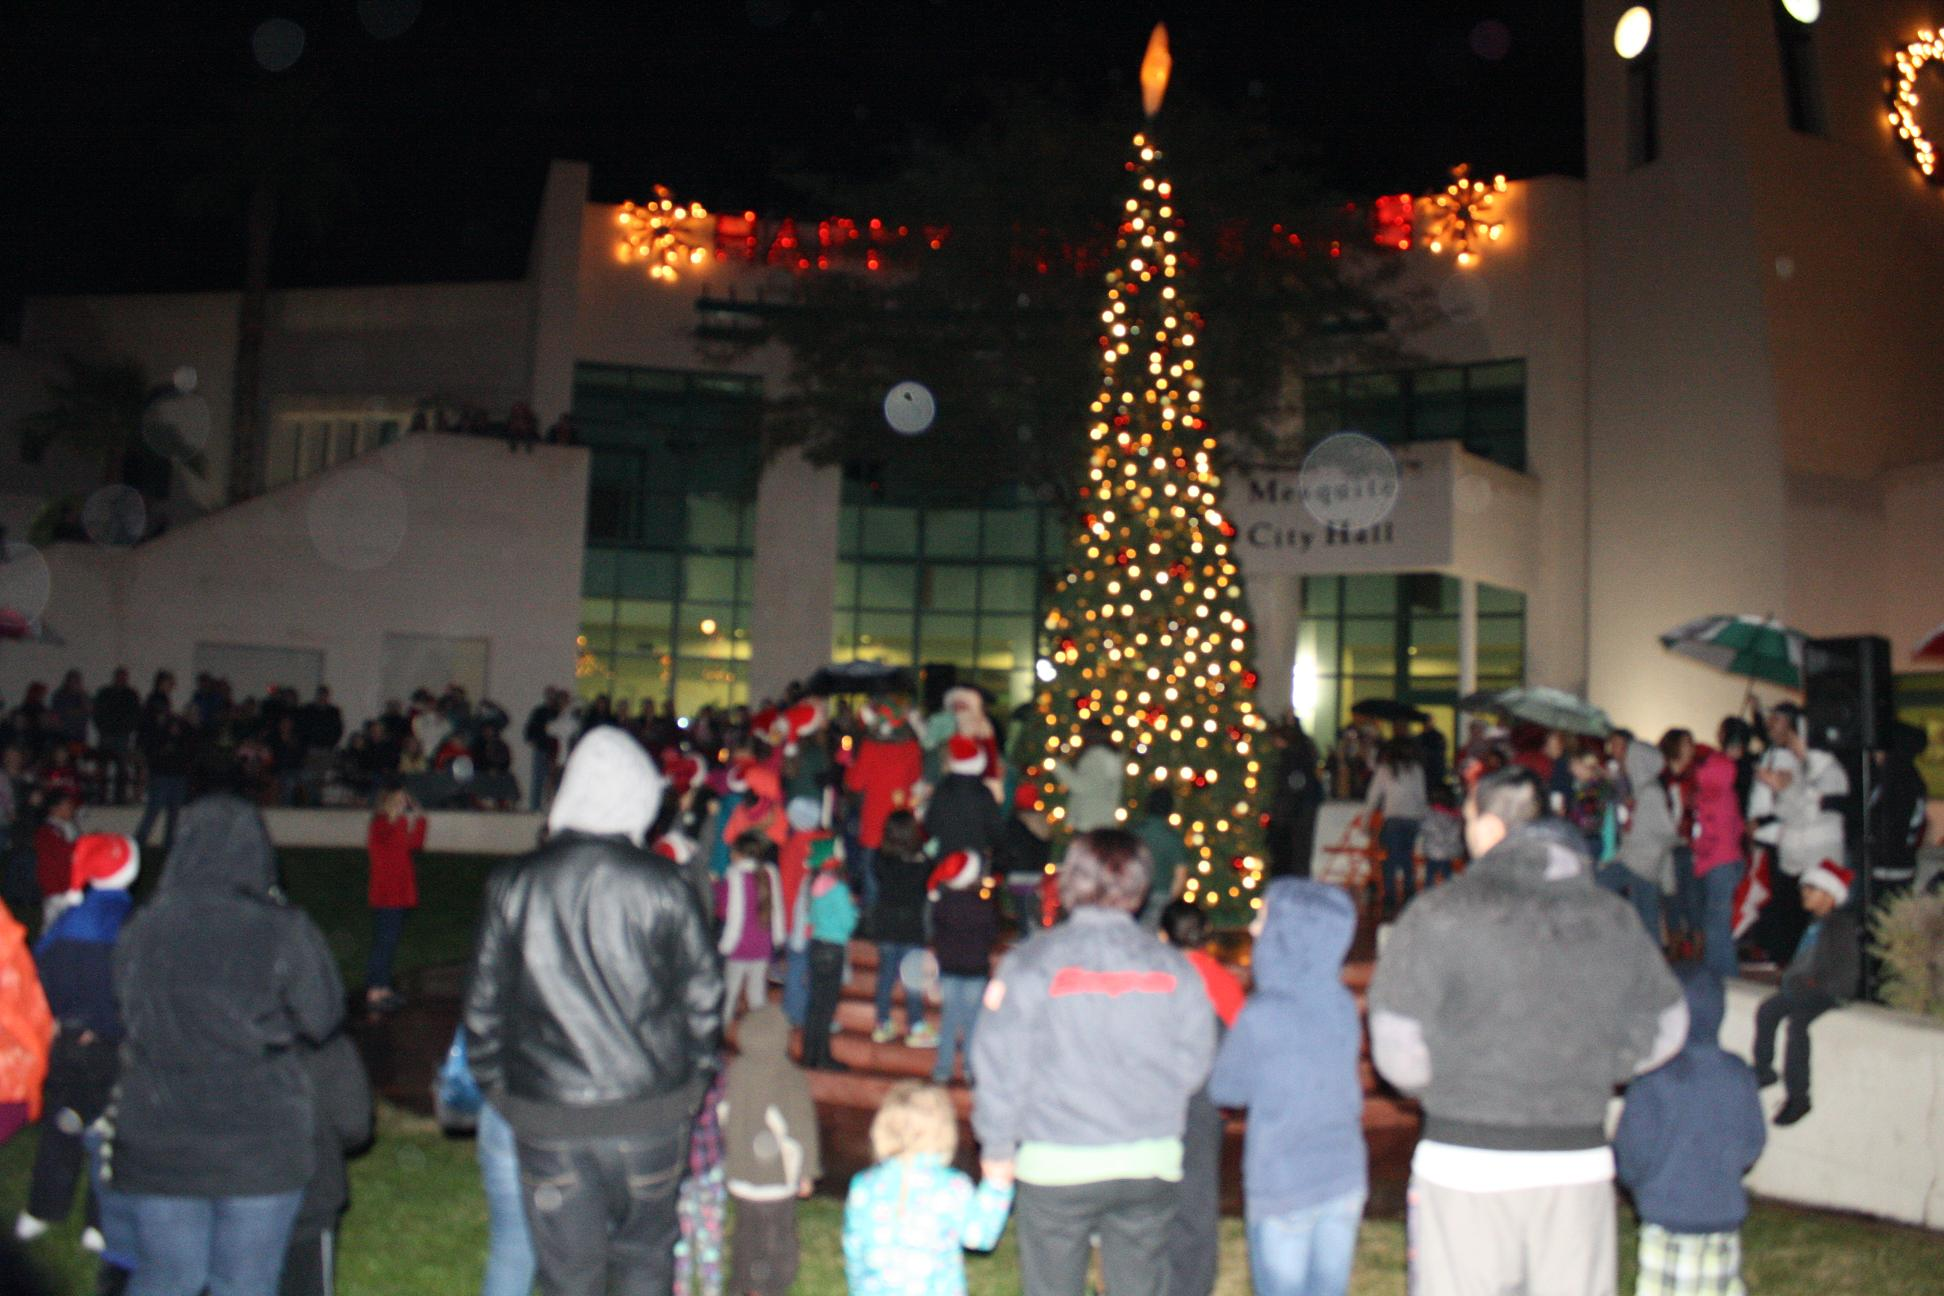 Large crowd enjoys tree lighting ceremony